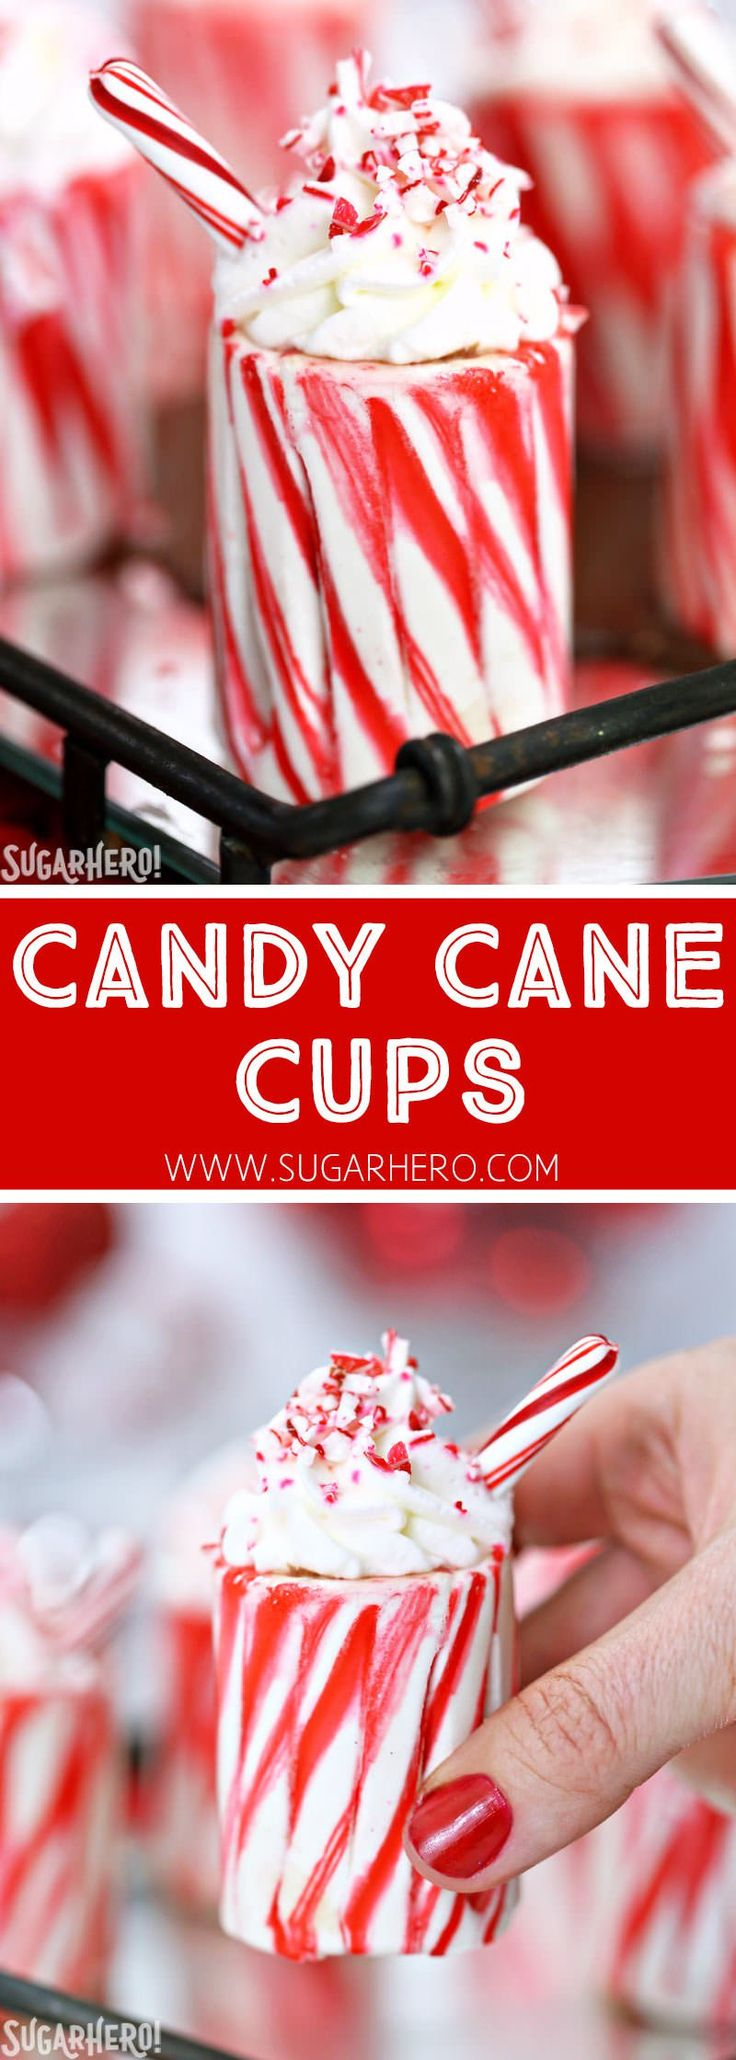 Candy Cane Cups - easy homemade candy cane shot glasses! Fill them with your favorite holiday cocktail or hot chocolate | From SugarHero.com